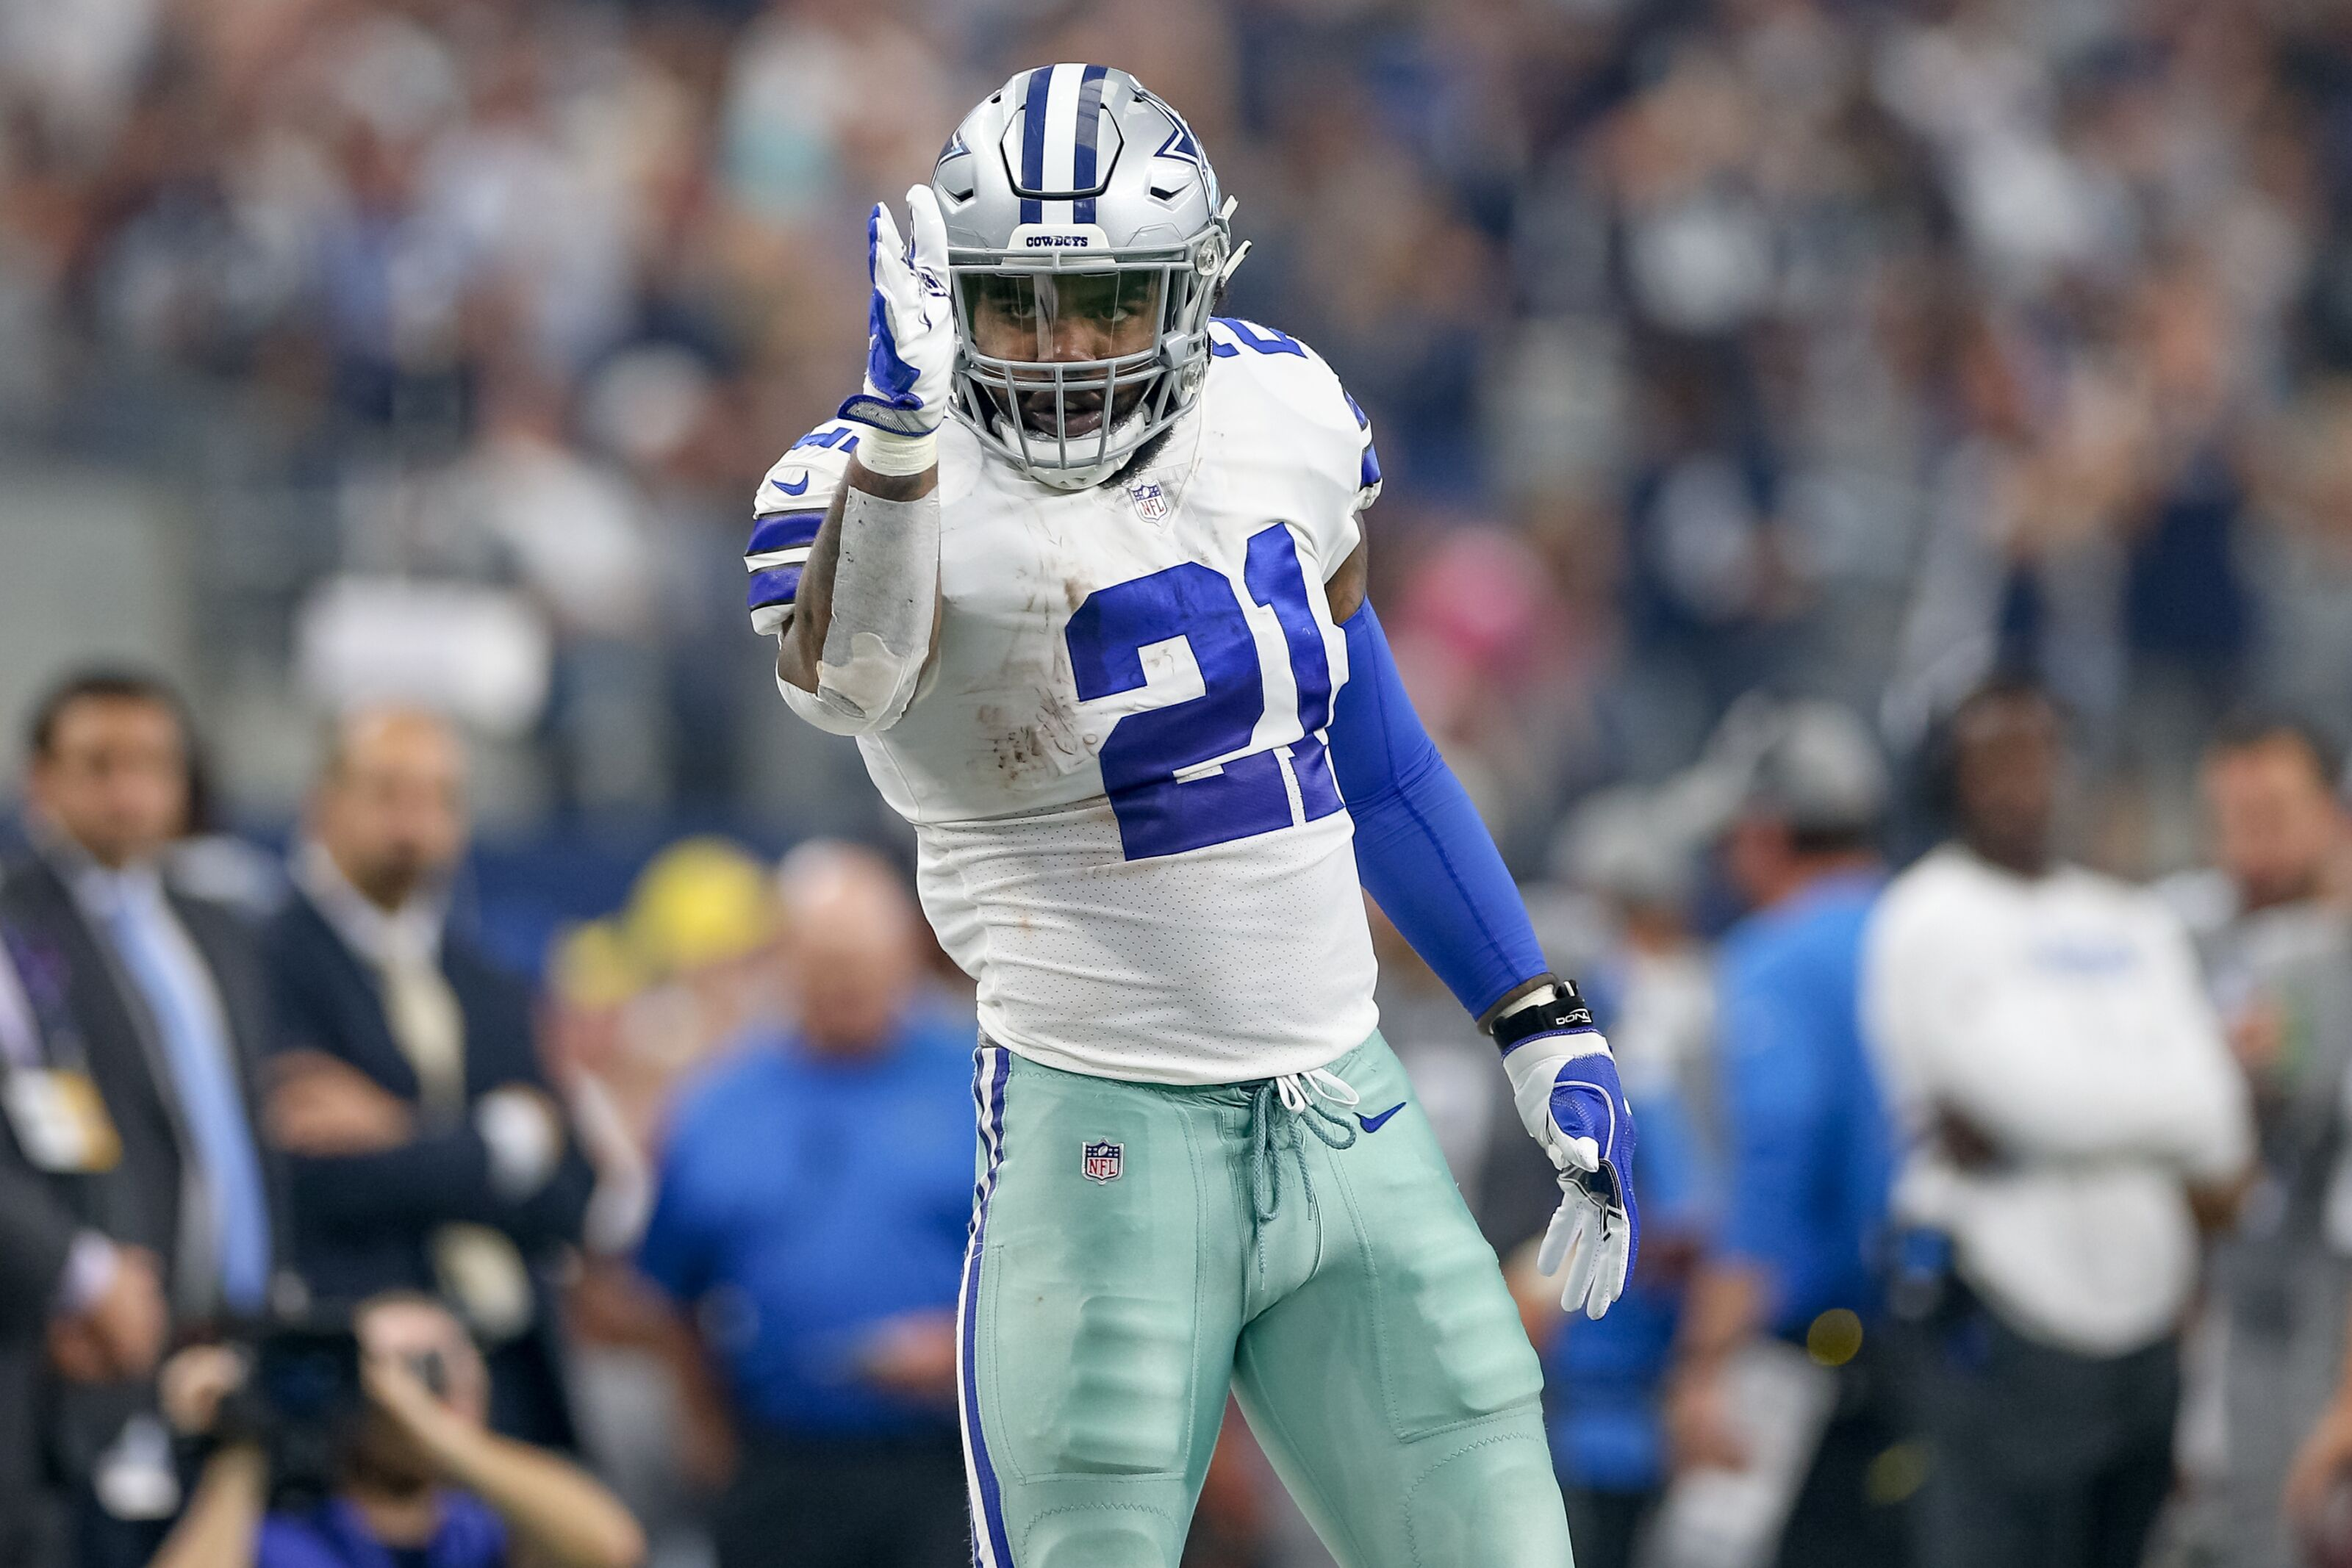 Ezekiel Elliott is an MVP candidate once again for Cowboys 232dcc547